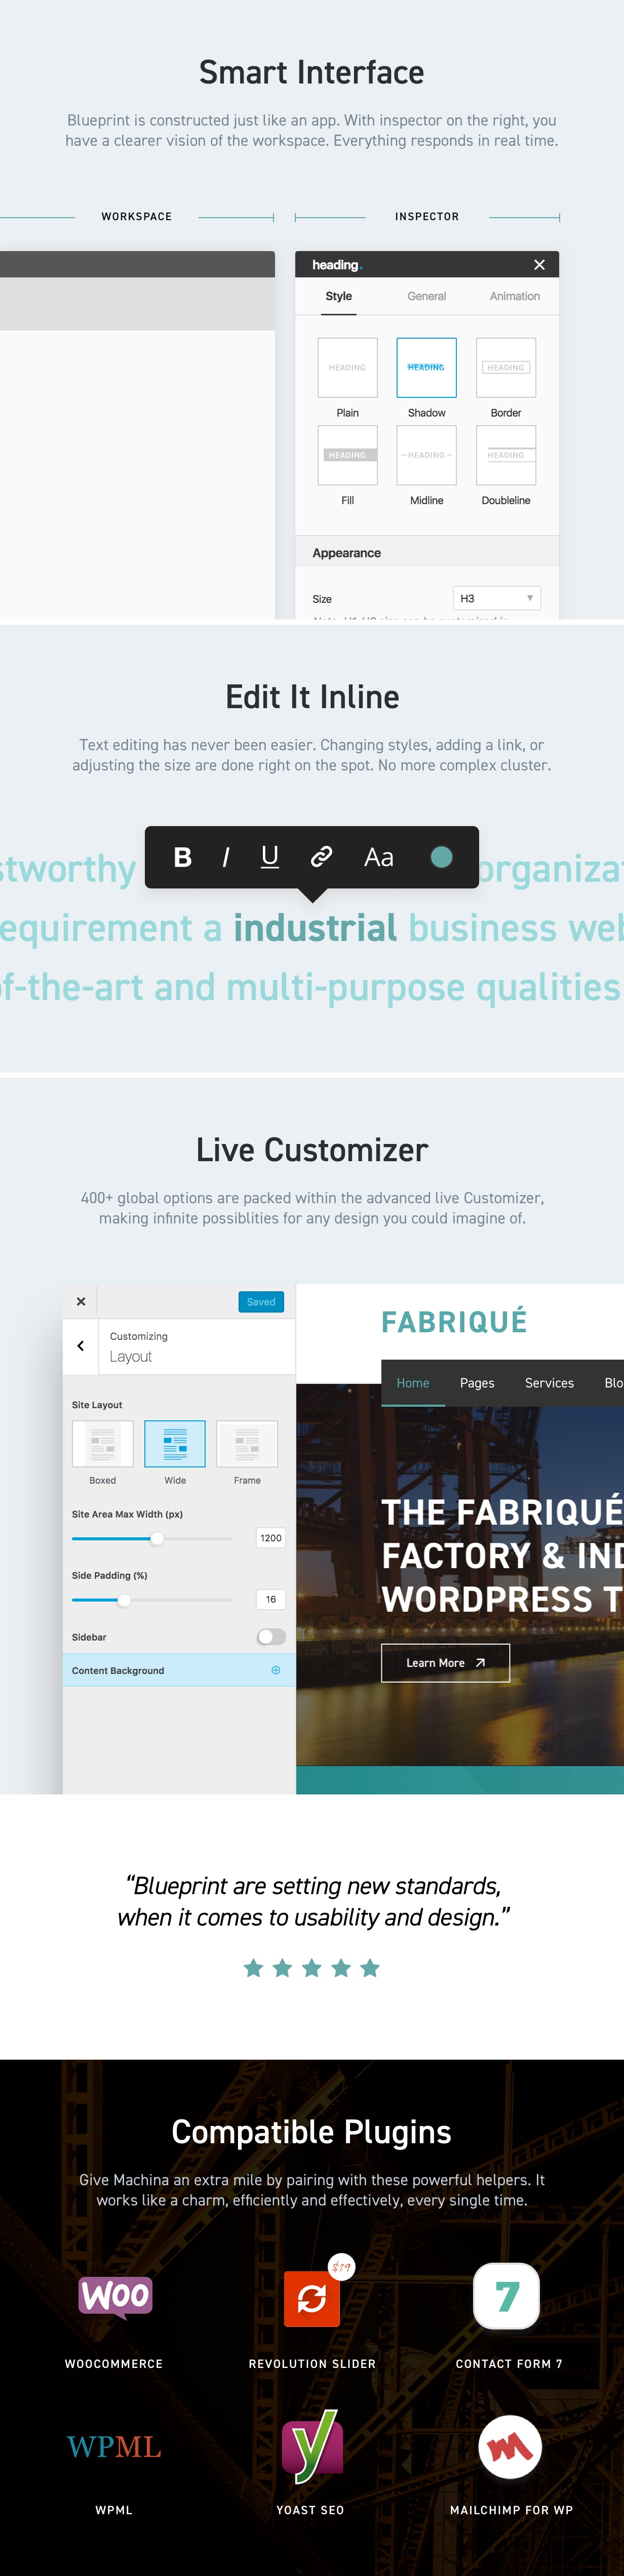 Fabriqu factory industrial business wordpress theme by twisttheme fabriqu is a state of the art multi purpose wordpress theme meticulously designed to cater to factory and manufacturing industry related websites malvernweather Gallery